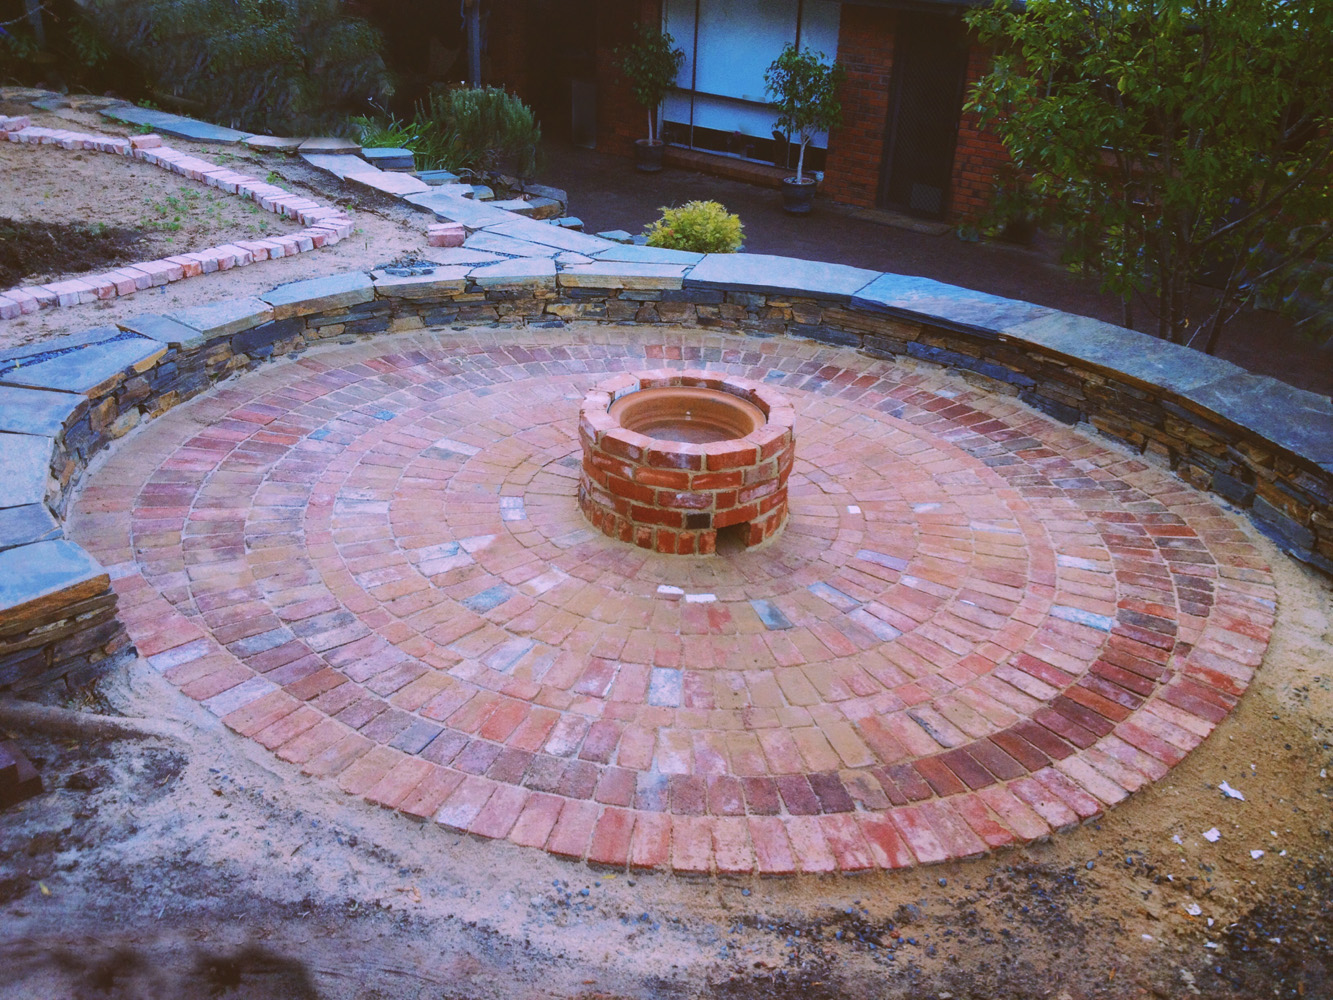 Stone seating, circular paving, and a firepit